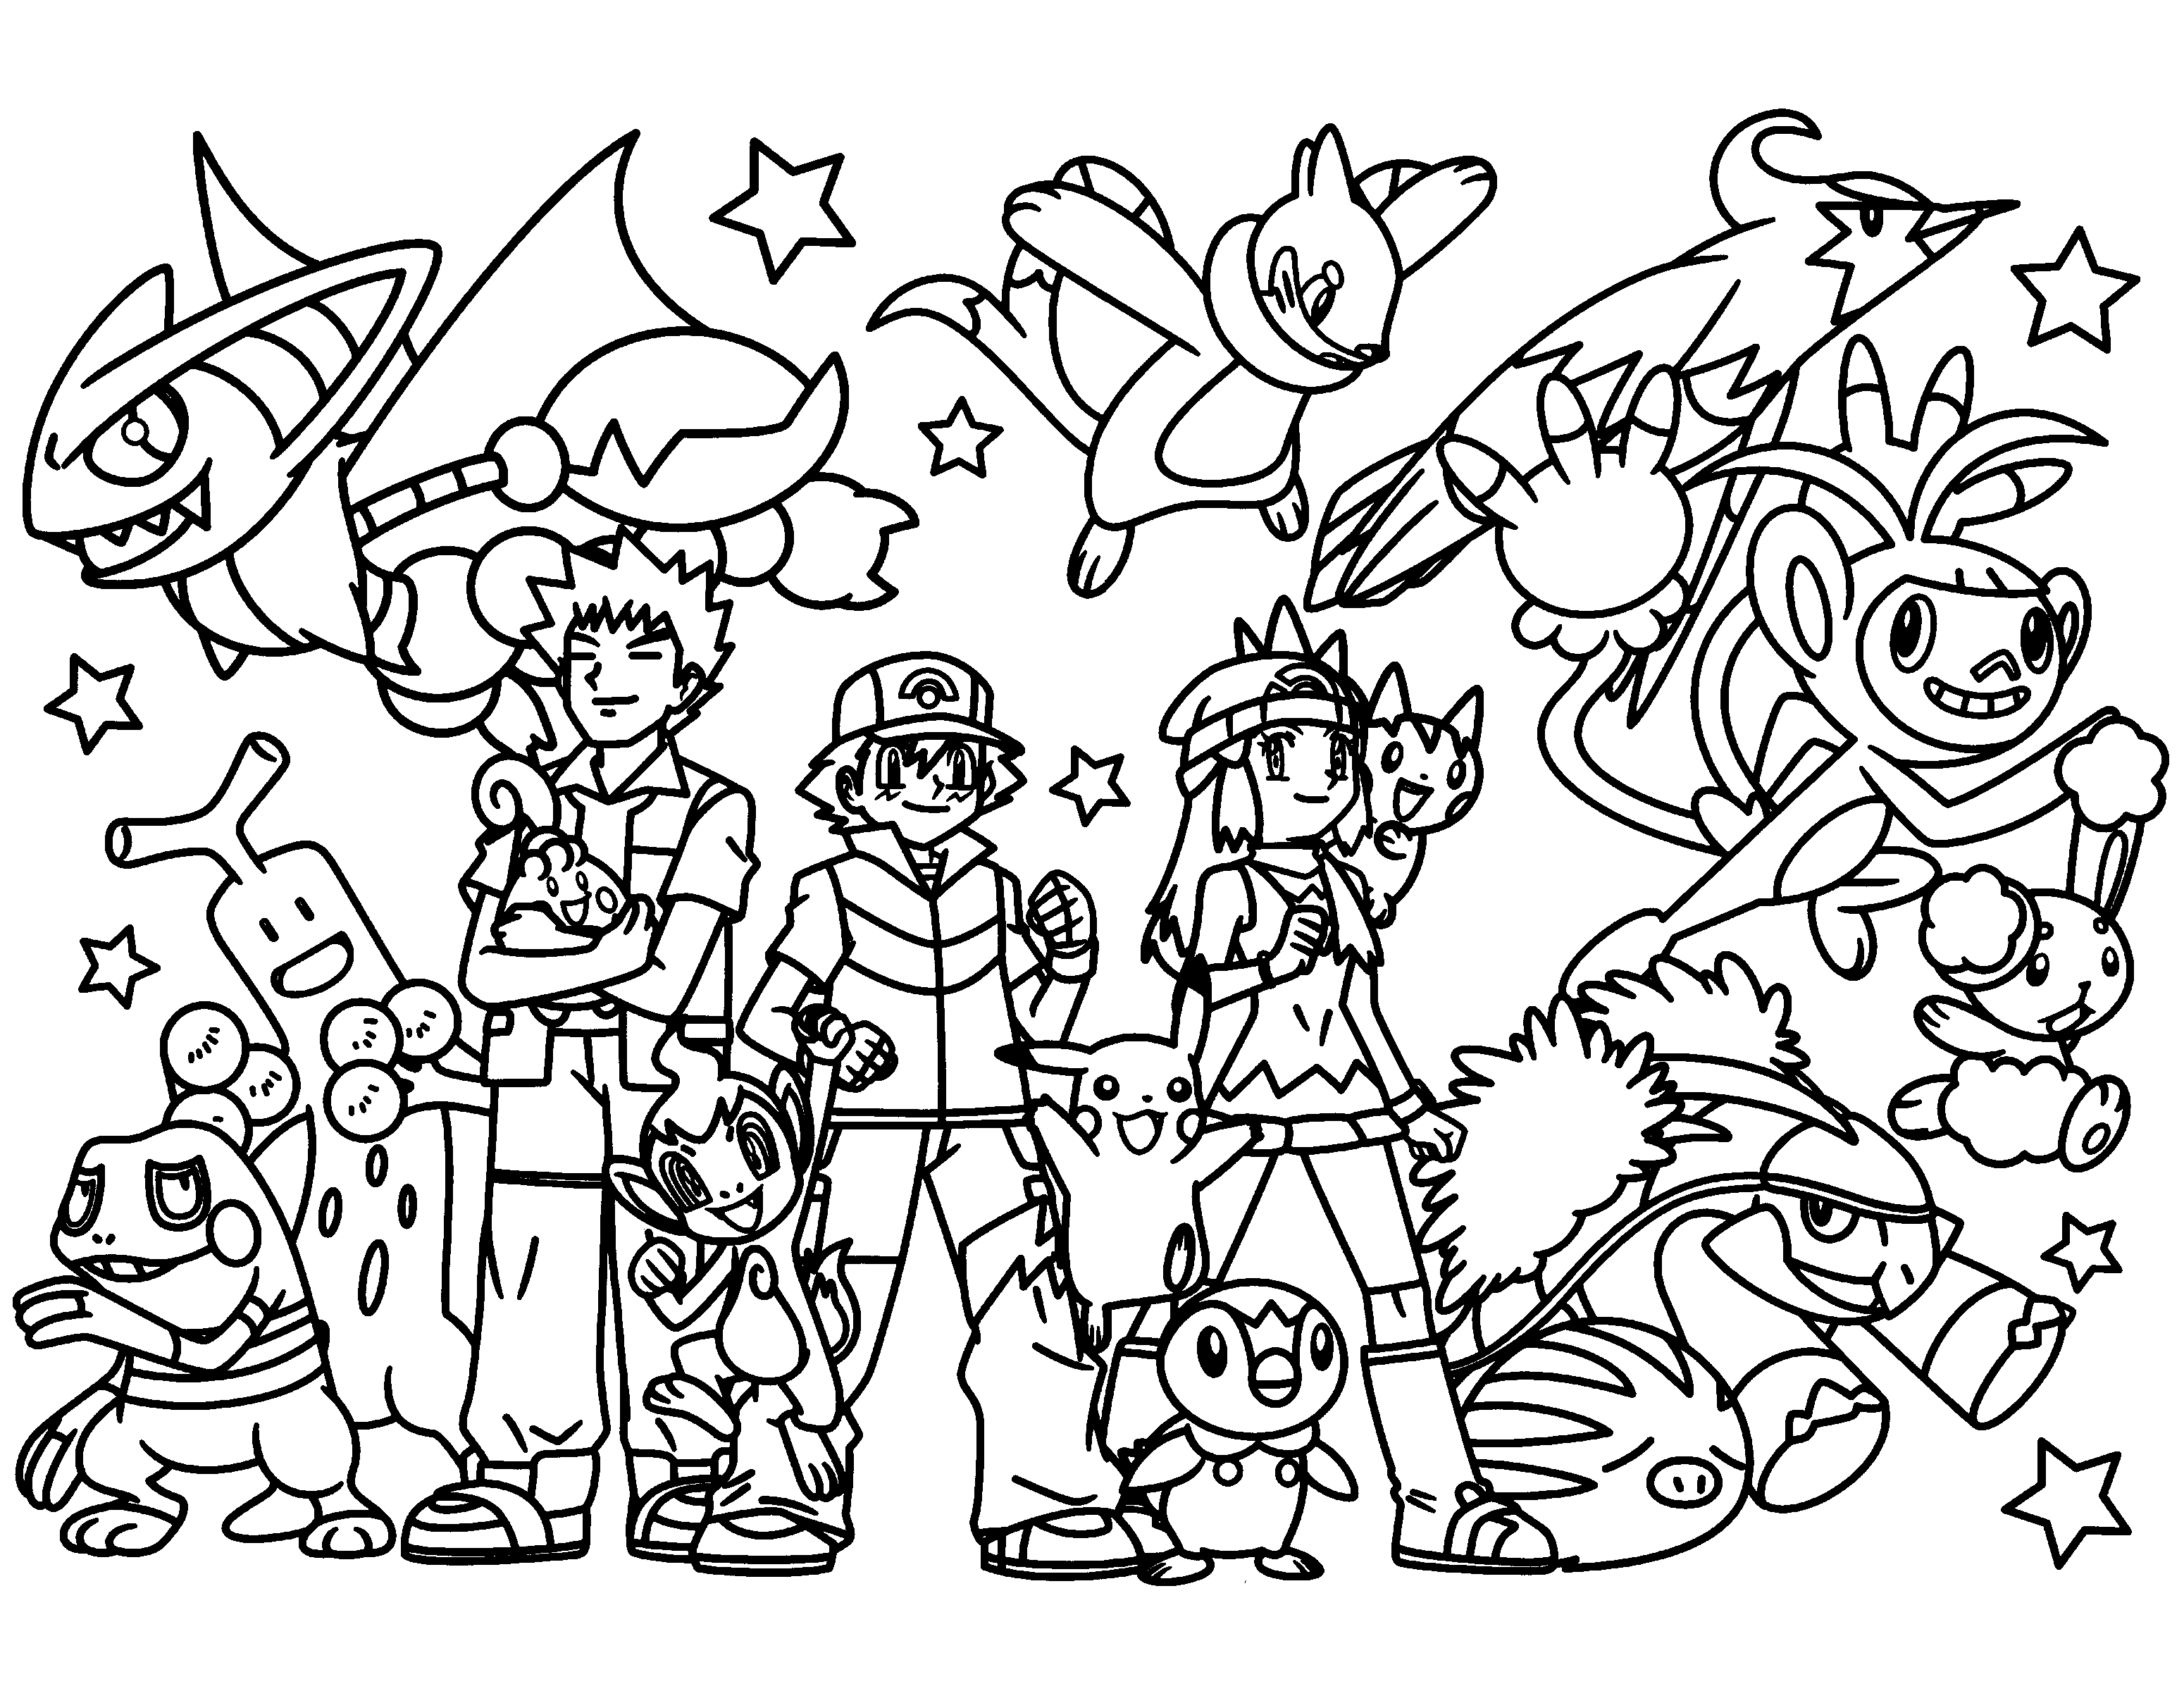 3100x2400 Pokemon Coloring Pages Join Your Favorite Pokemon On An Adventure!